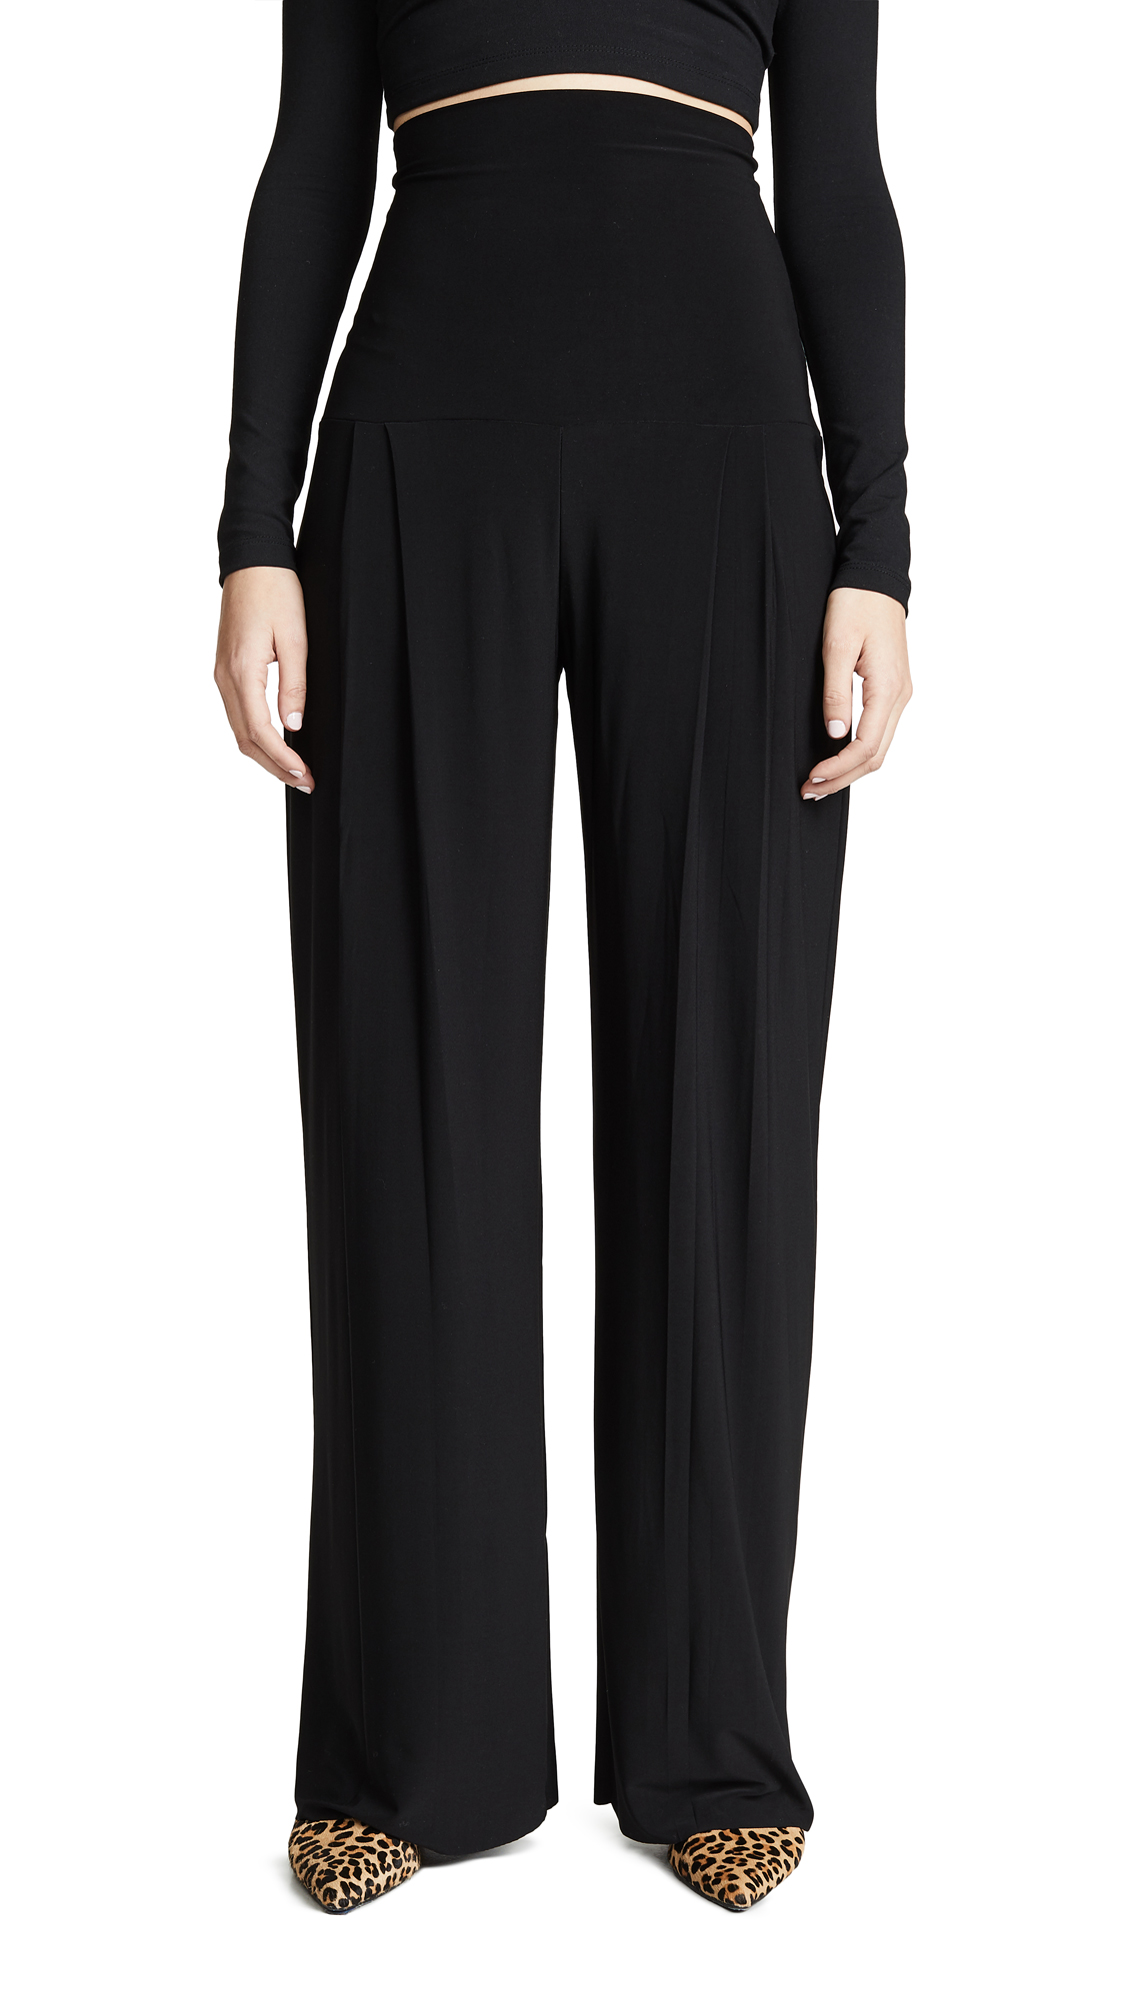 Norma Kamali High Waist Pleat Pants